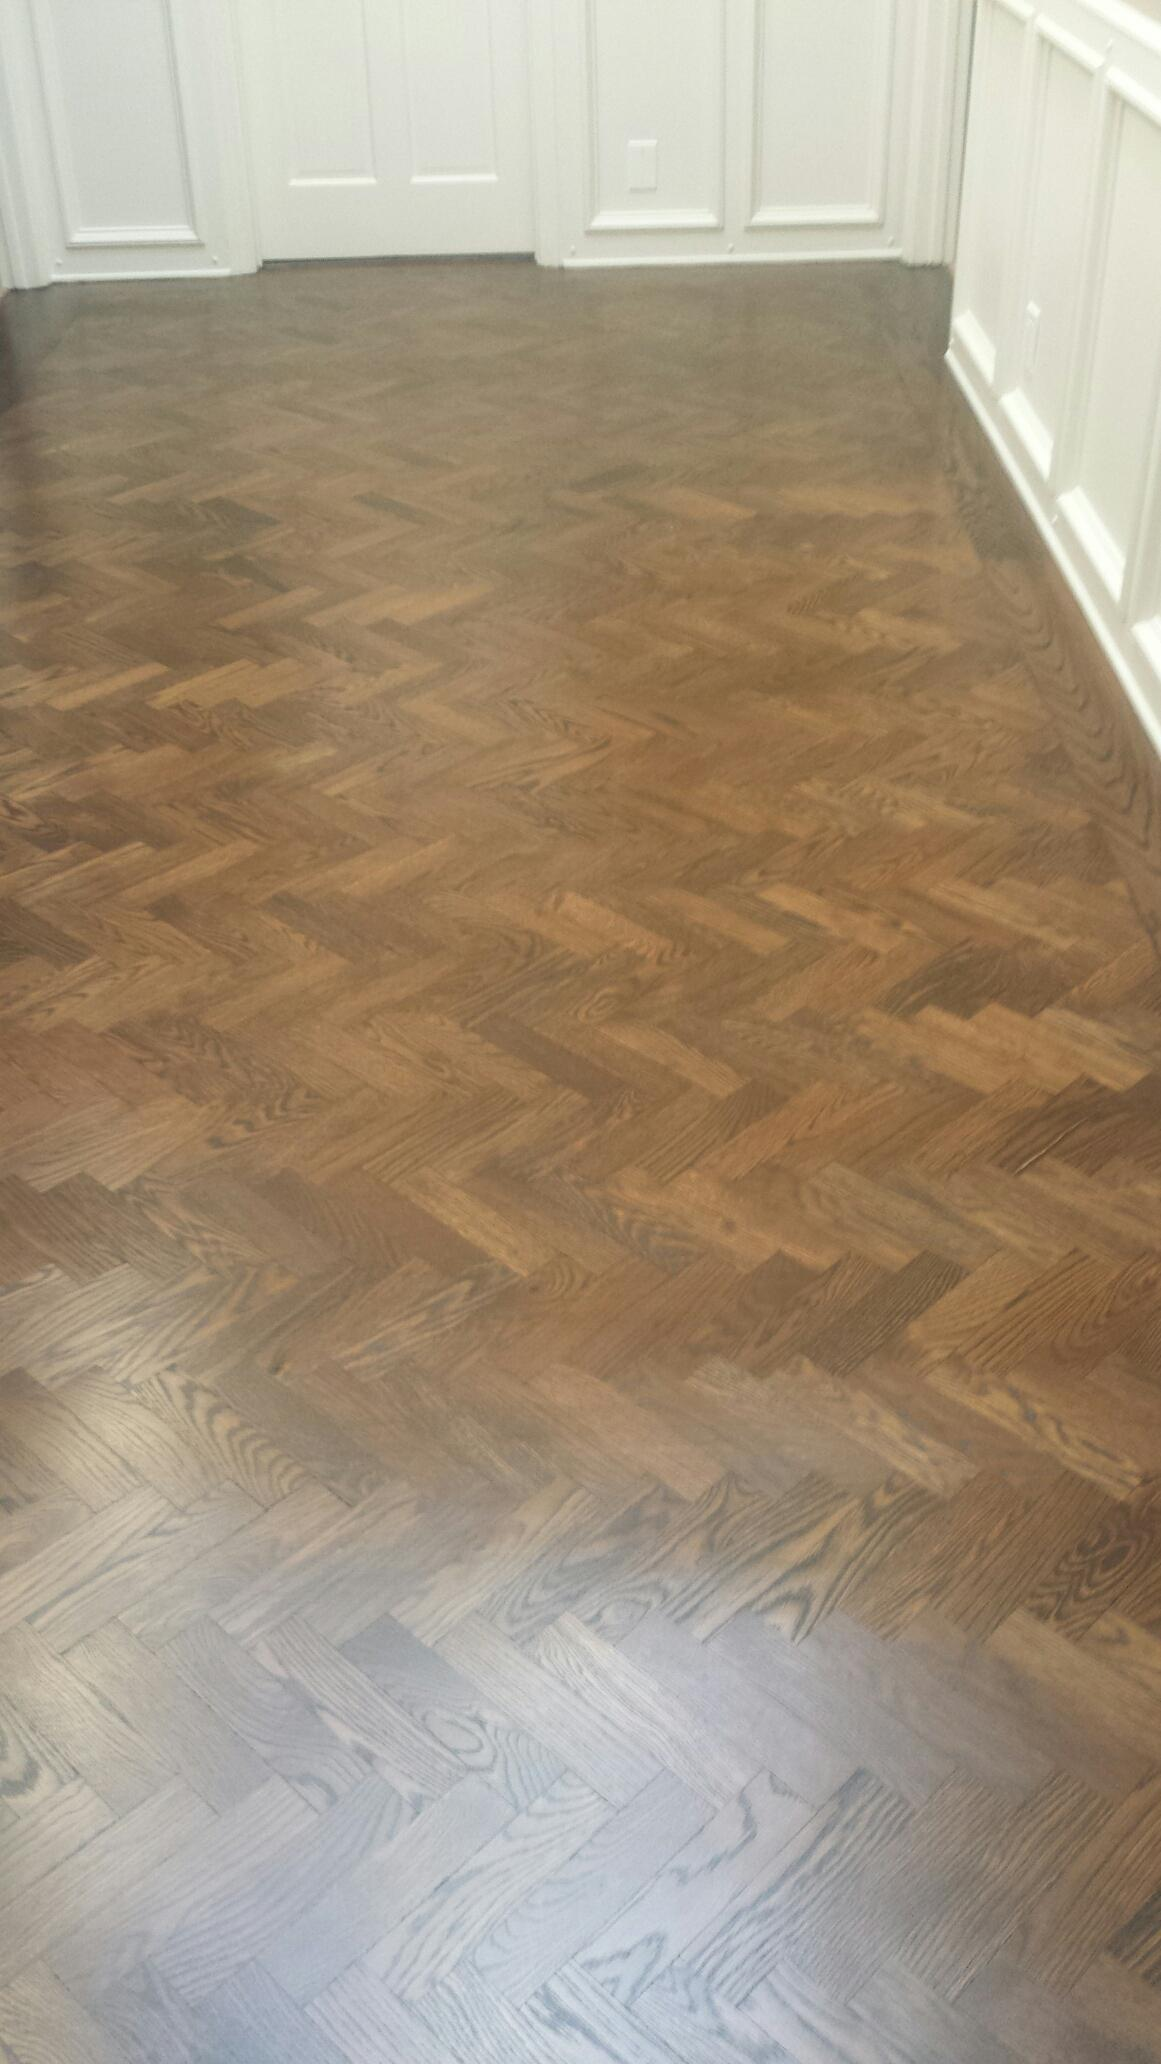 Herringbone flooring sanded and stain with antique brown color and finish with 4 coats of semi gloss polyurethane.